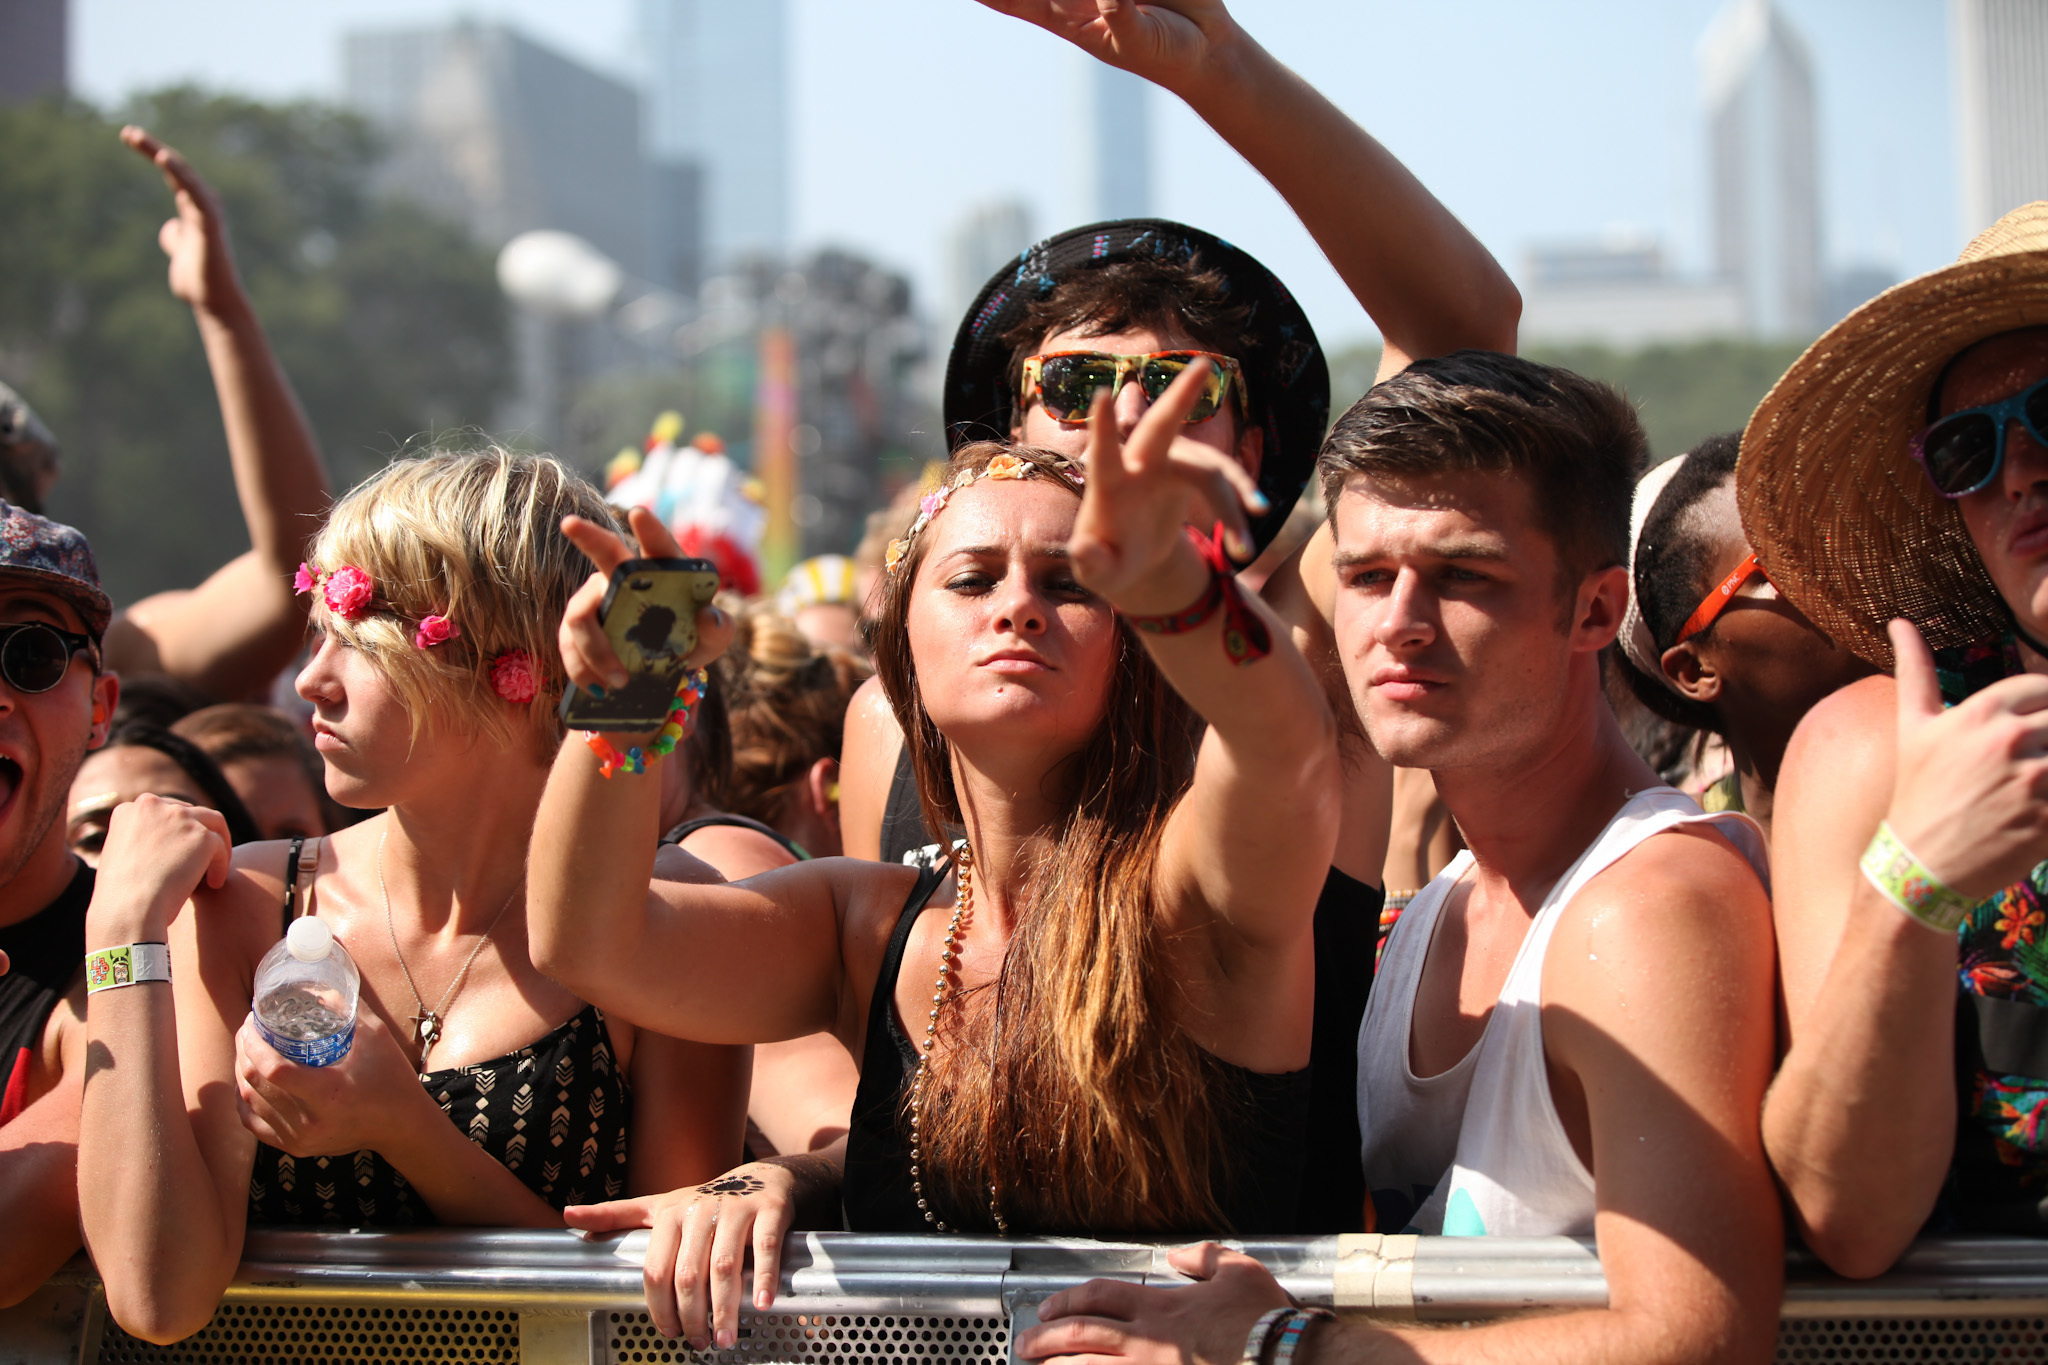 Saturday faces in the crowd